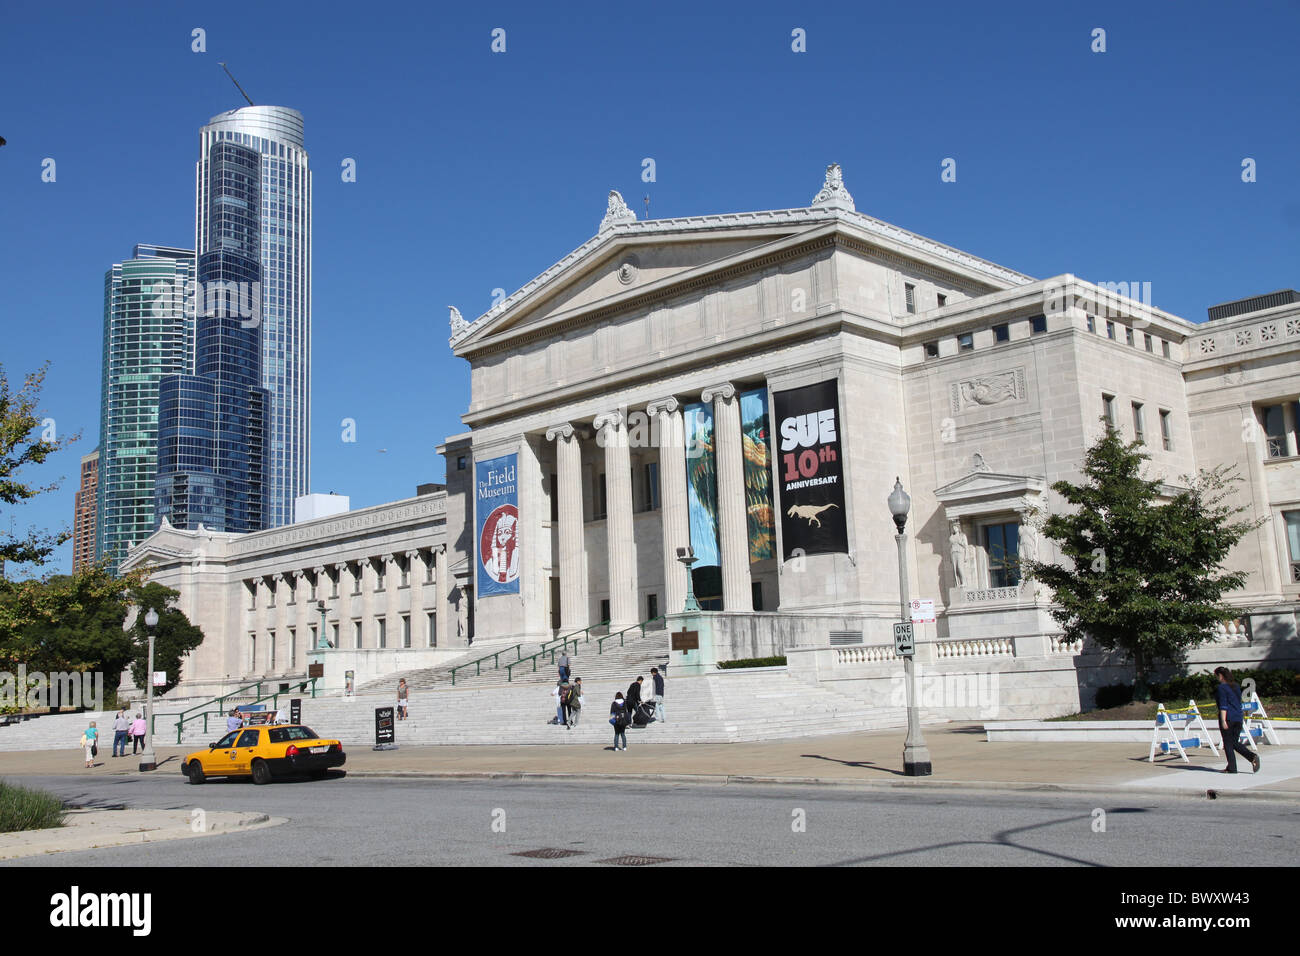 Field Museum of Natural History, Chicago - Stock Image